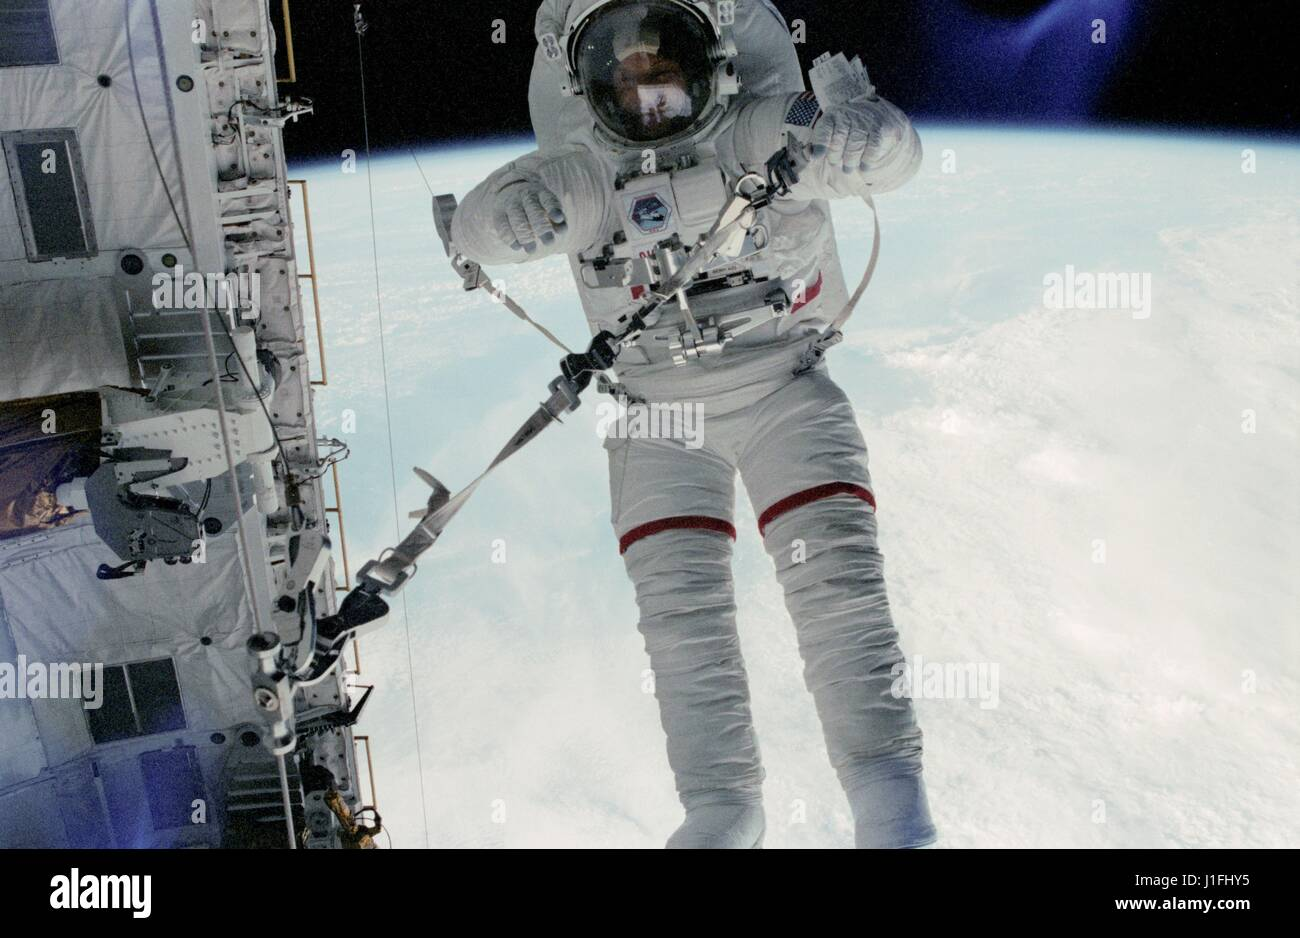 Sts 6 Stock Photos & Sts 6 Stock Images - Alamy